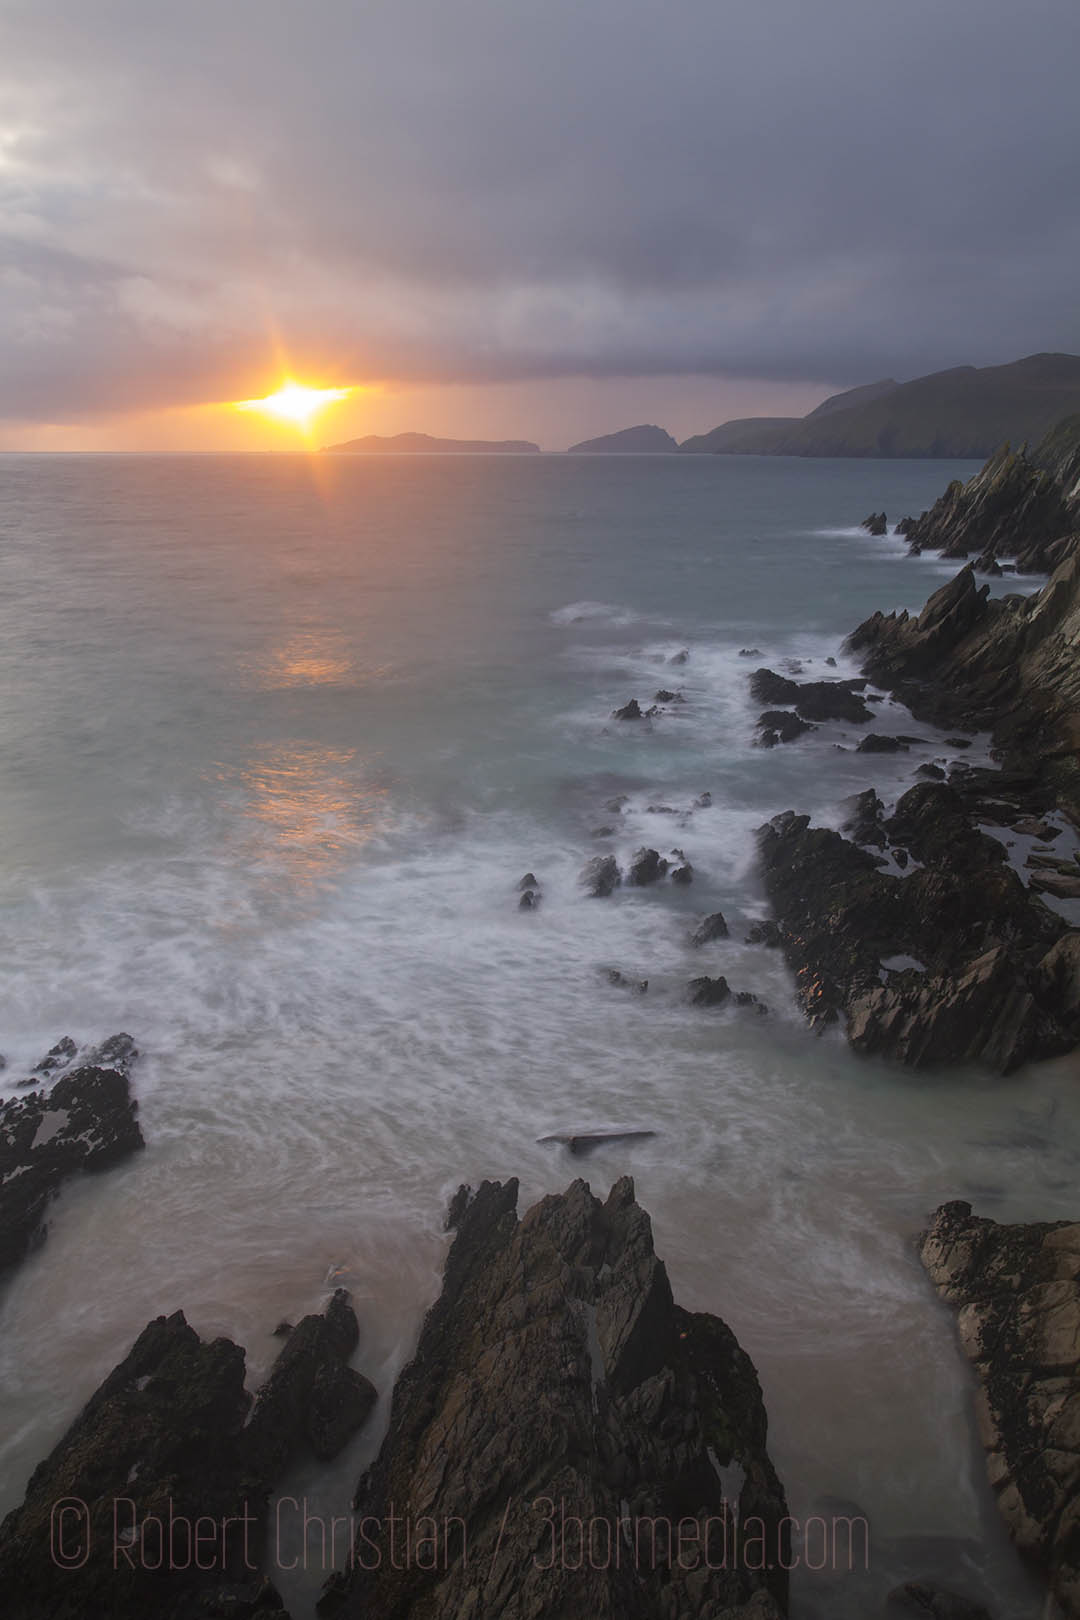 Sunset seen from Coumeenole